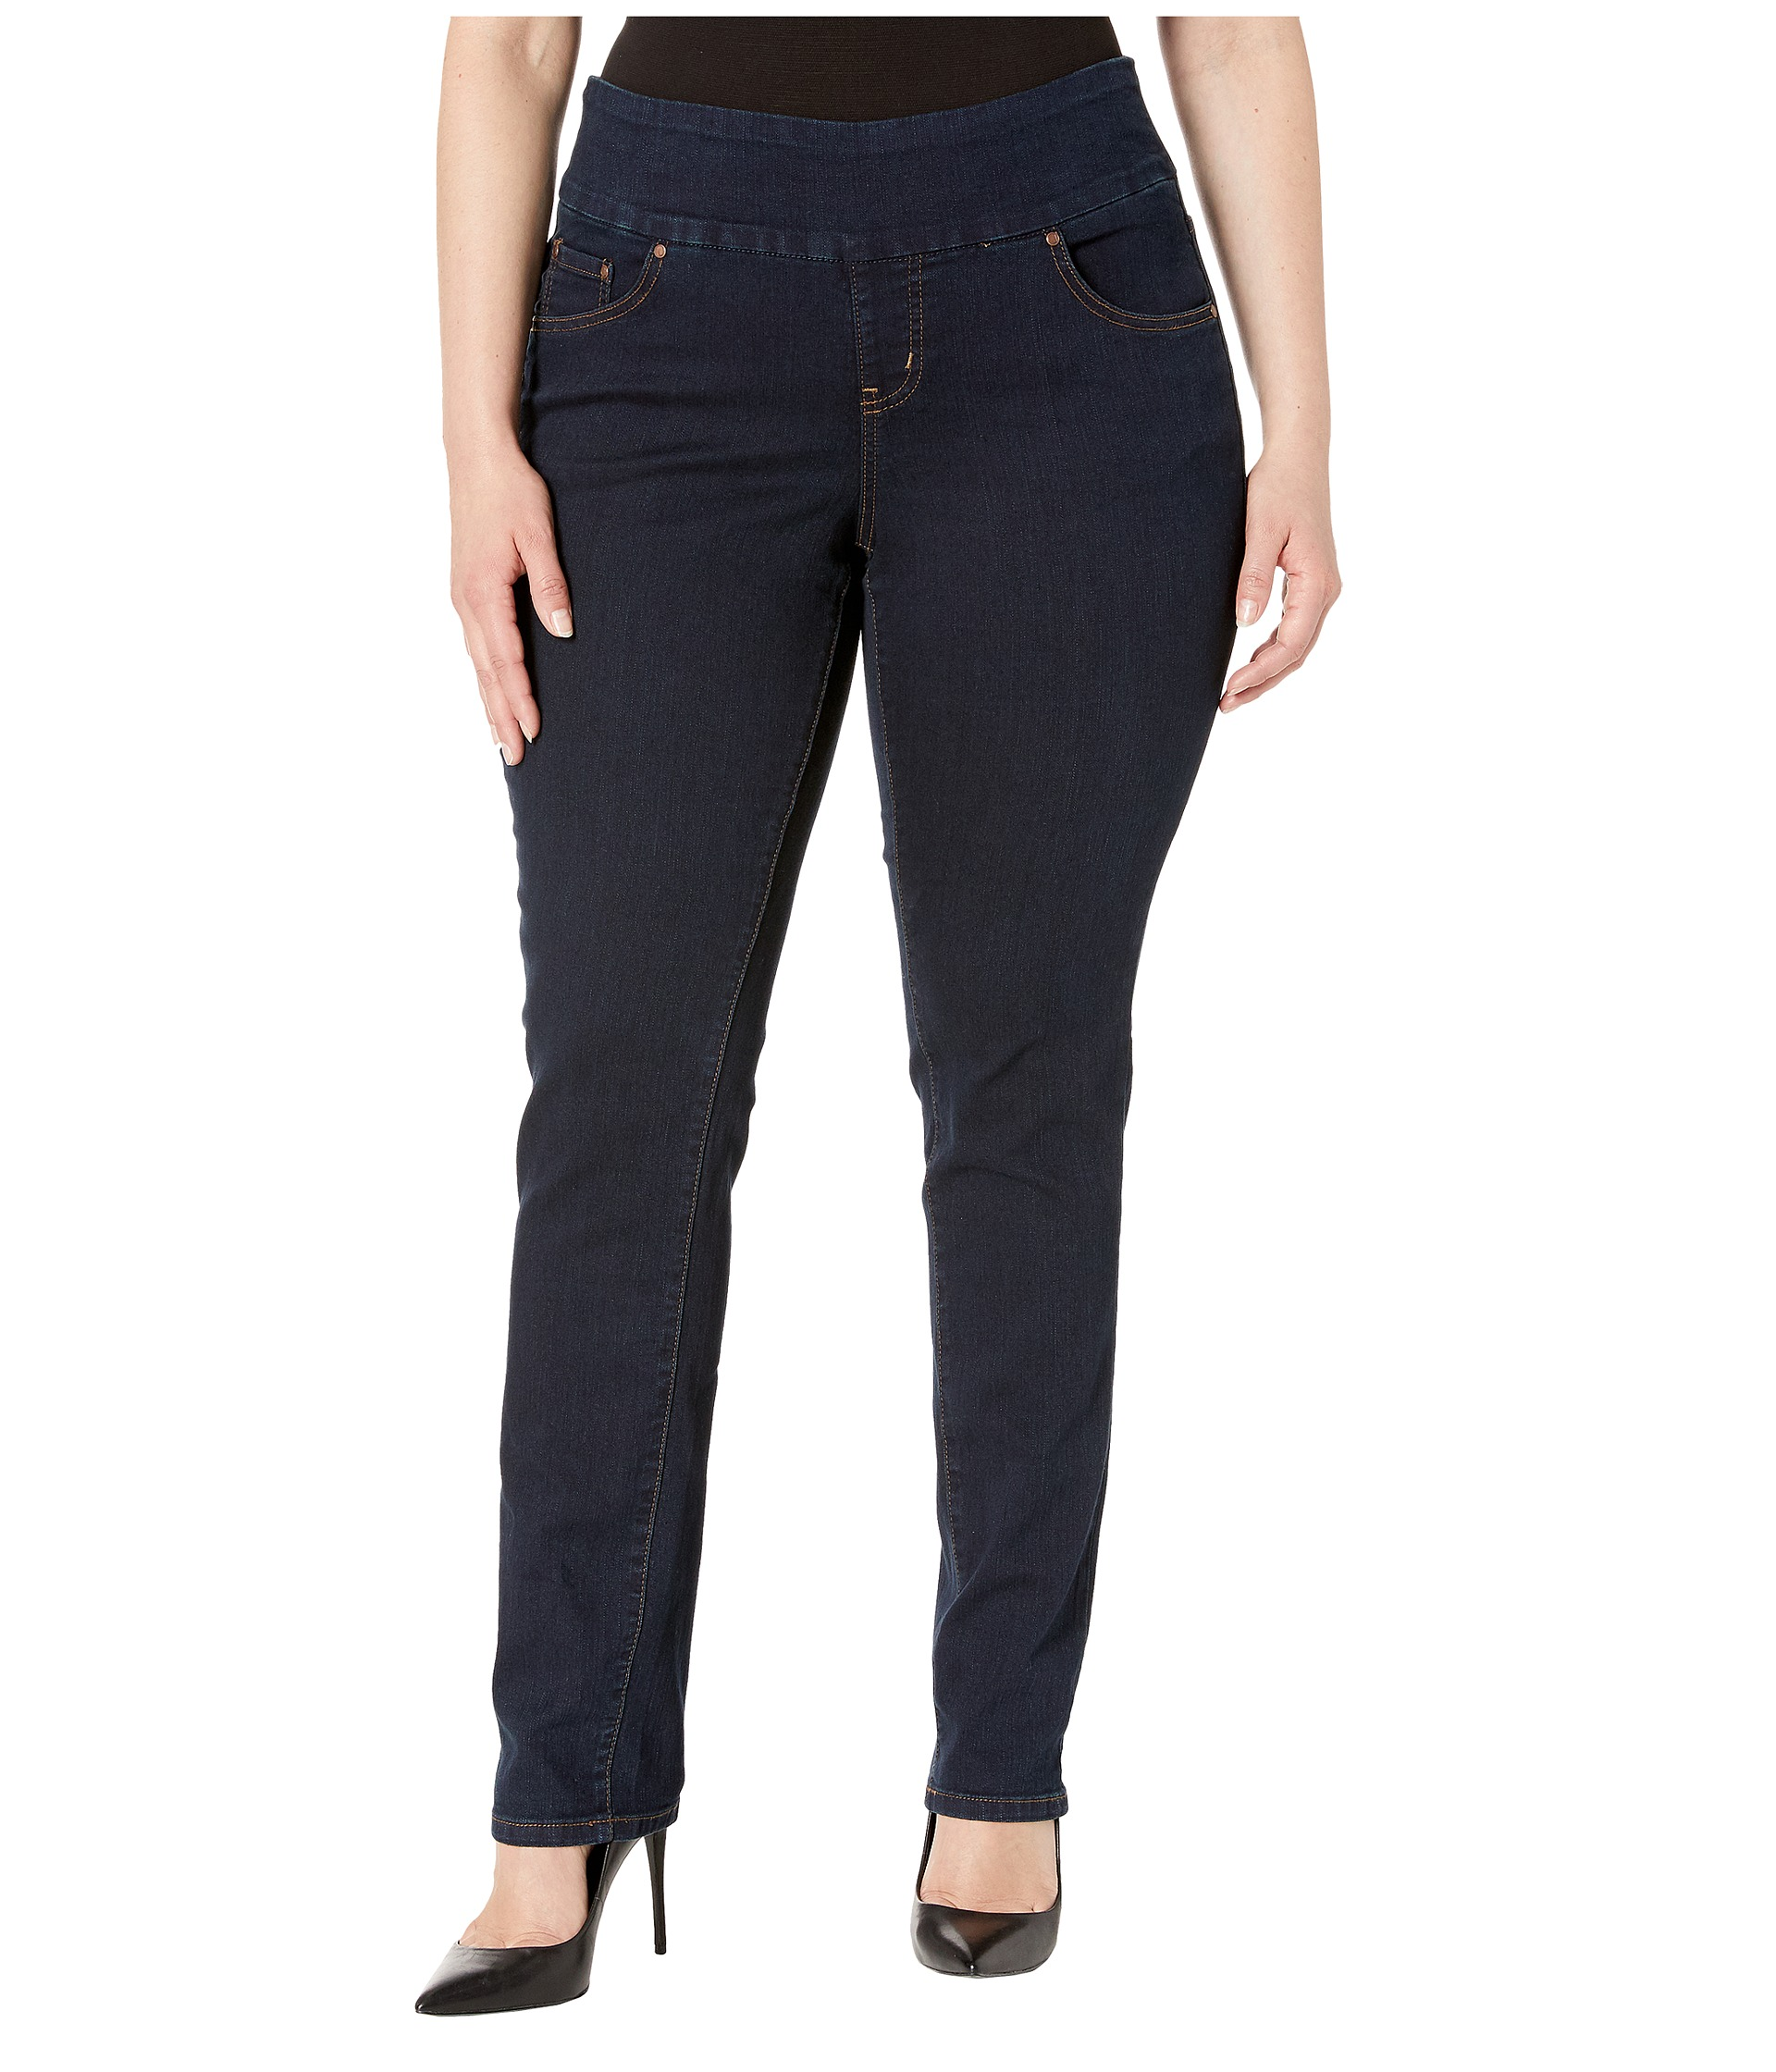 Jag Jeans Plus Size, Clothing, Women | Shipped Free at Zappos